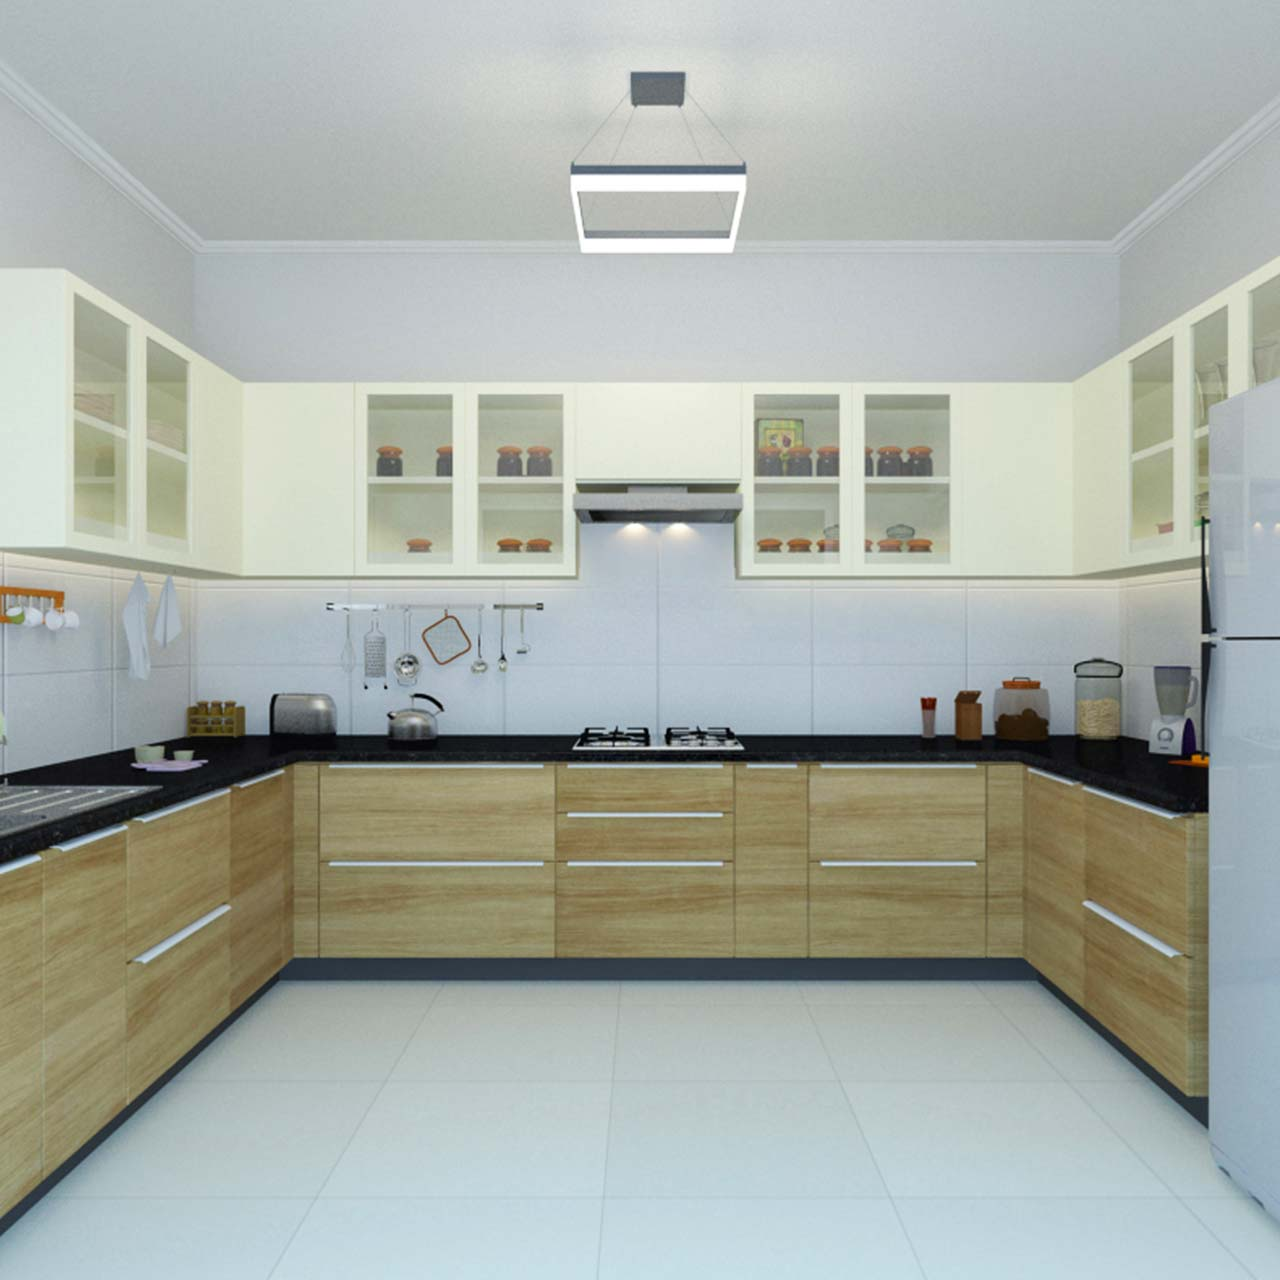 u shaped kitchen layout with wooden finish on the drawers below the countertop in u kitchen layout in kitchen shapes